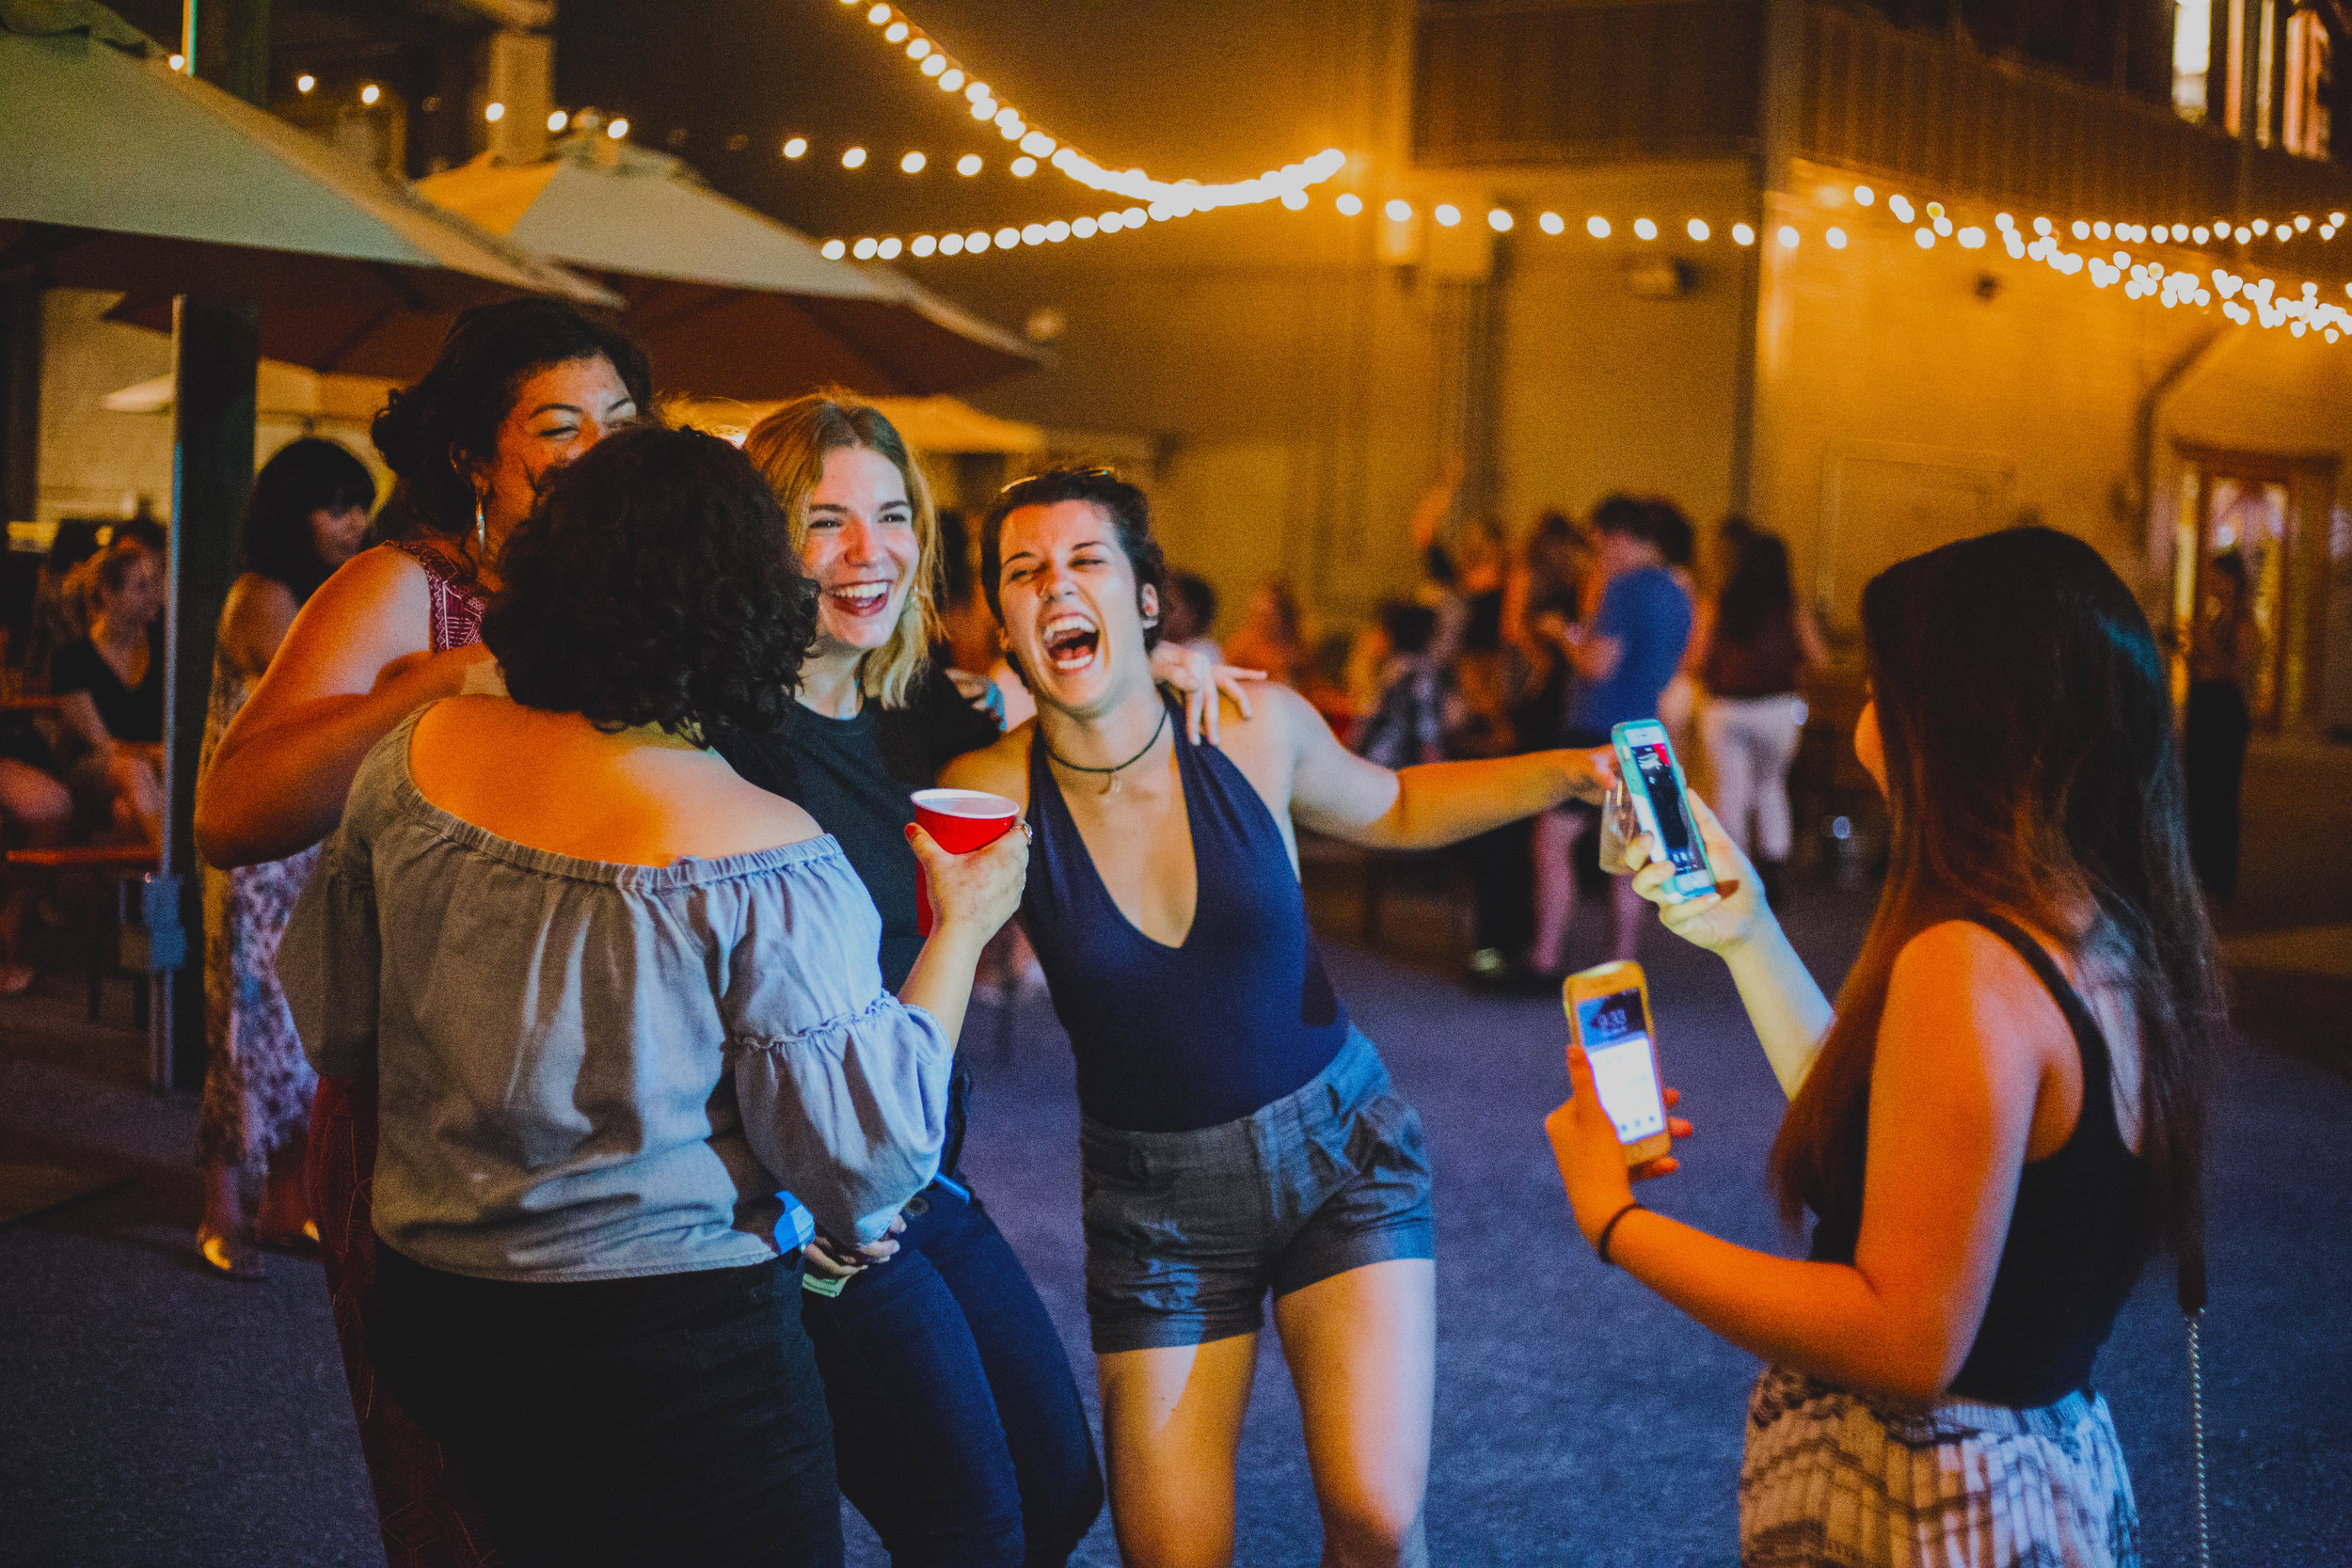 YEAR TWO ANNIVERSARY - There was just so much joy at this fundraiser. The best part about being a photographer is capturing joy and I was swimming in it last May.